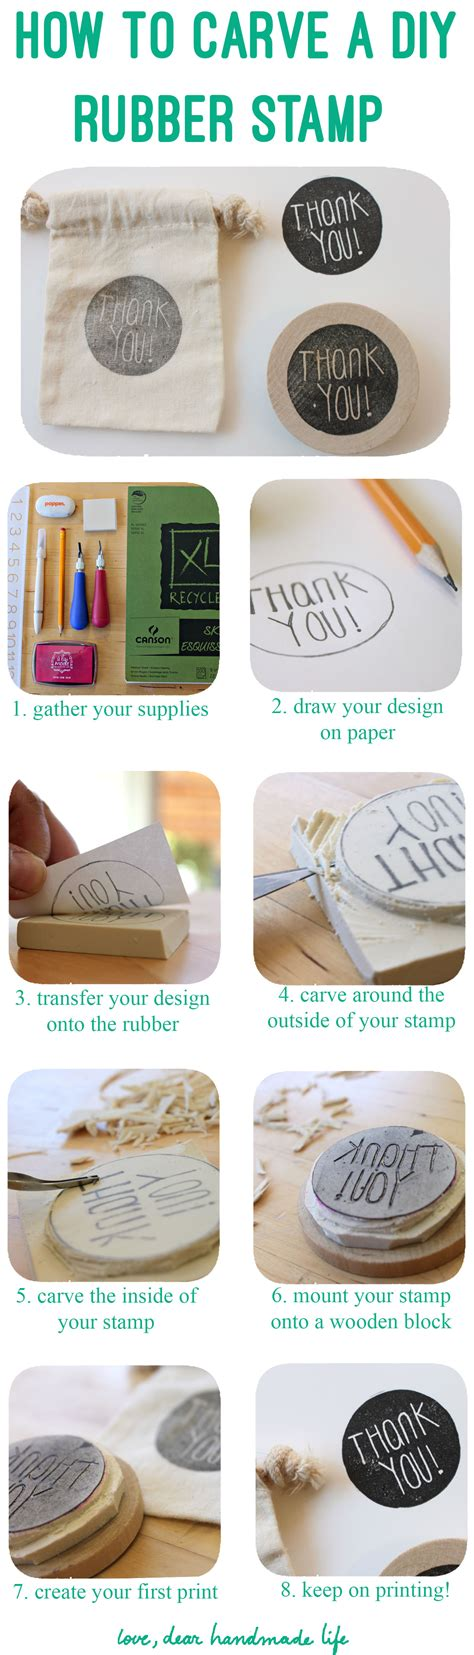 How To Make A Diy Carved Rubber Stamp  Dear Handmade Life